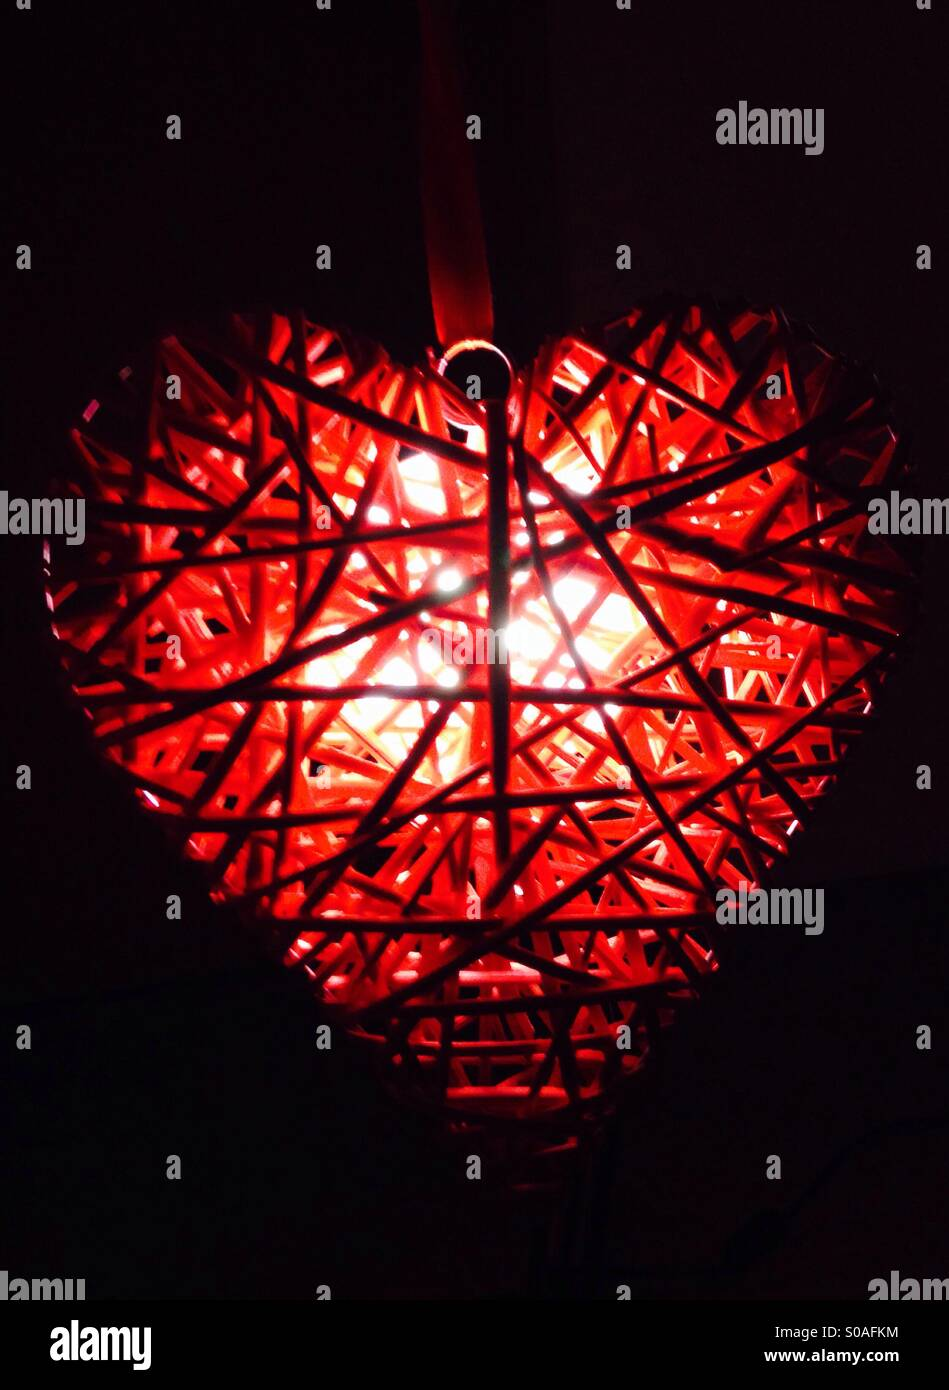 Heart shaped light - Stock Image